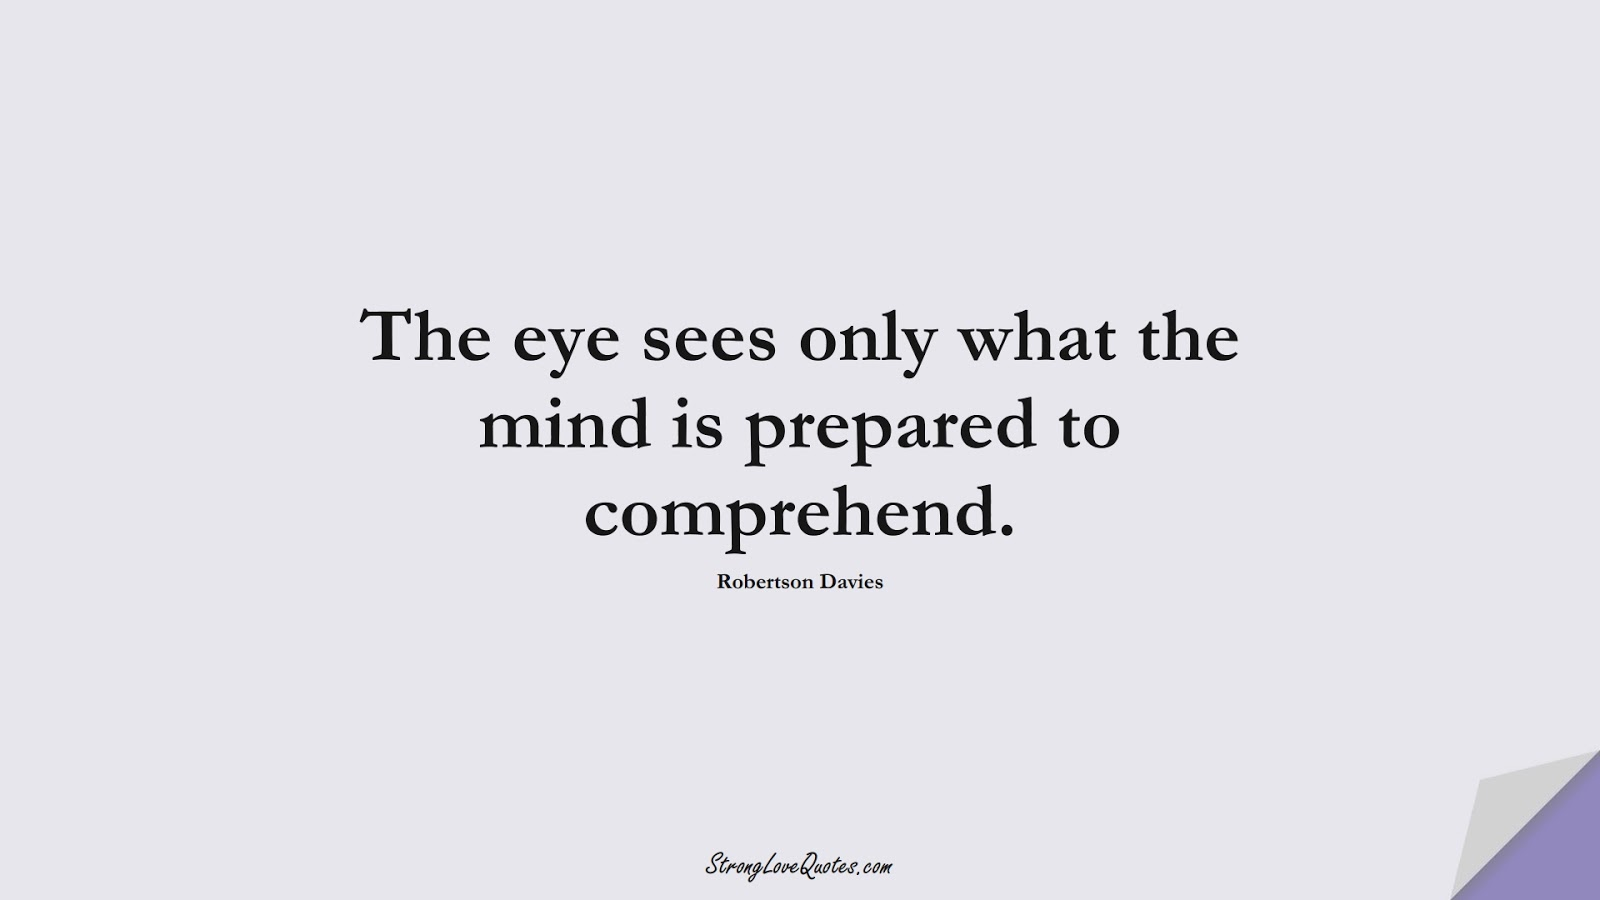 The eye sees only what the mind is prepared to comprehend. (Robertson Davies);  #KnowledgeQuotes